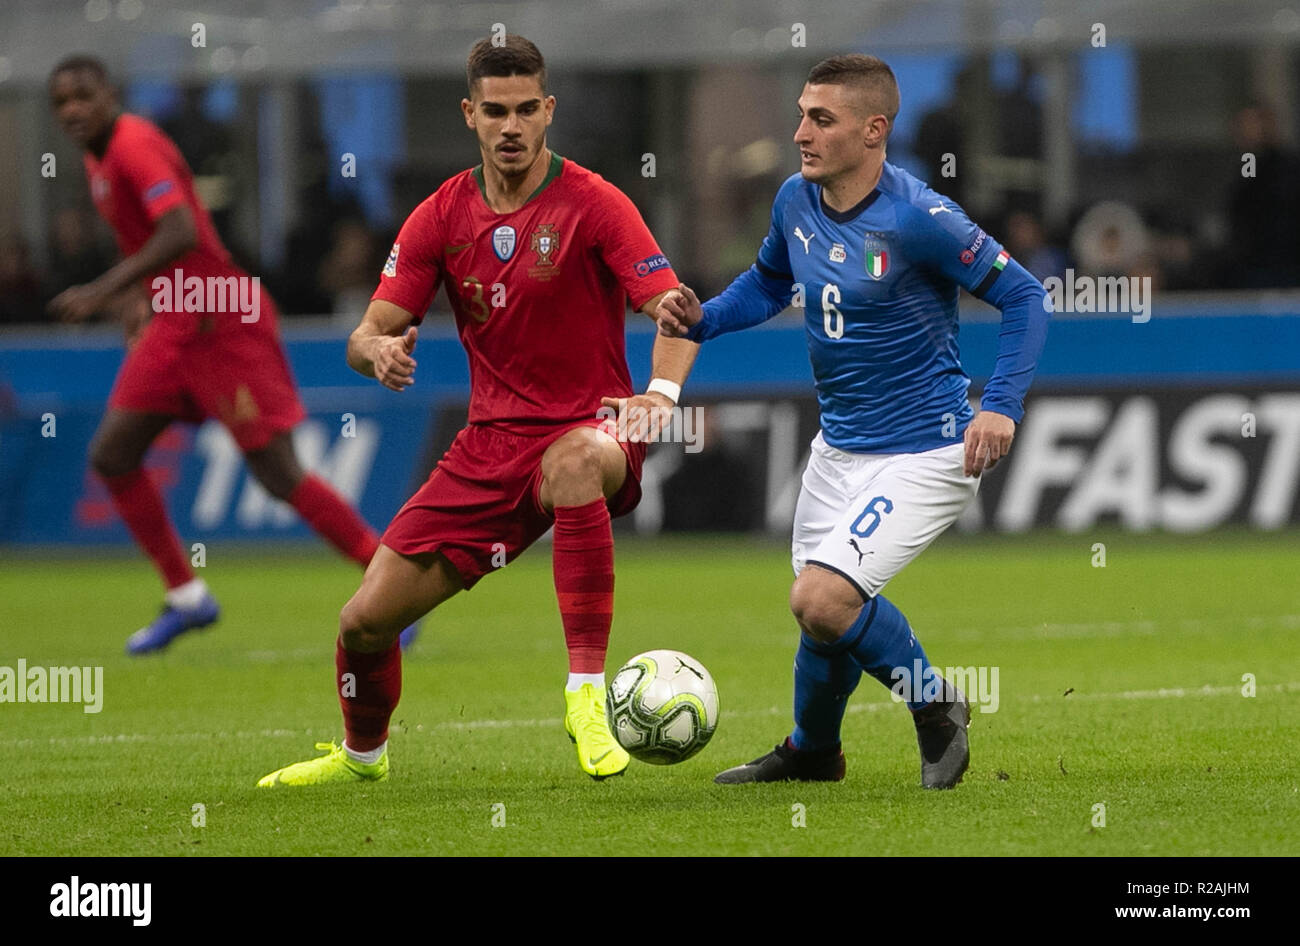 Milan, Italy. 17th Nov, 2018. Rúben Dias (Portugal) and Marco Verratti (Italy) during the UEFA Nations League 2018, League A, Group 3 football match between Italy and Portugal on November 17, 2018 at Giuseppe Meazza stadium in Milan, Italy - Photo Laurent Lairys / DPPI Credit: Laurent Lairys/Agence Locevaphotos/Alamy Live News Stock Photo